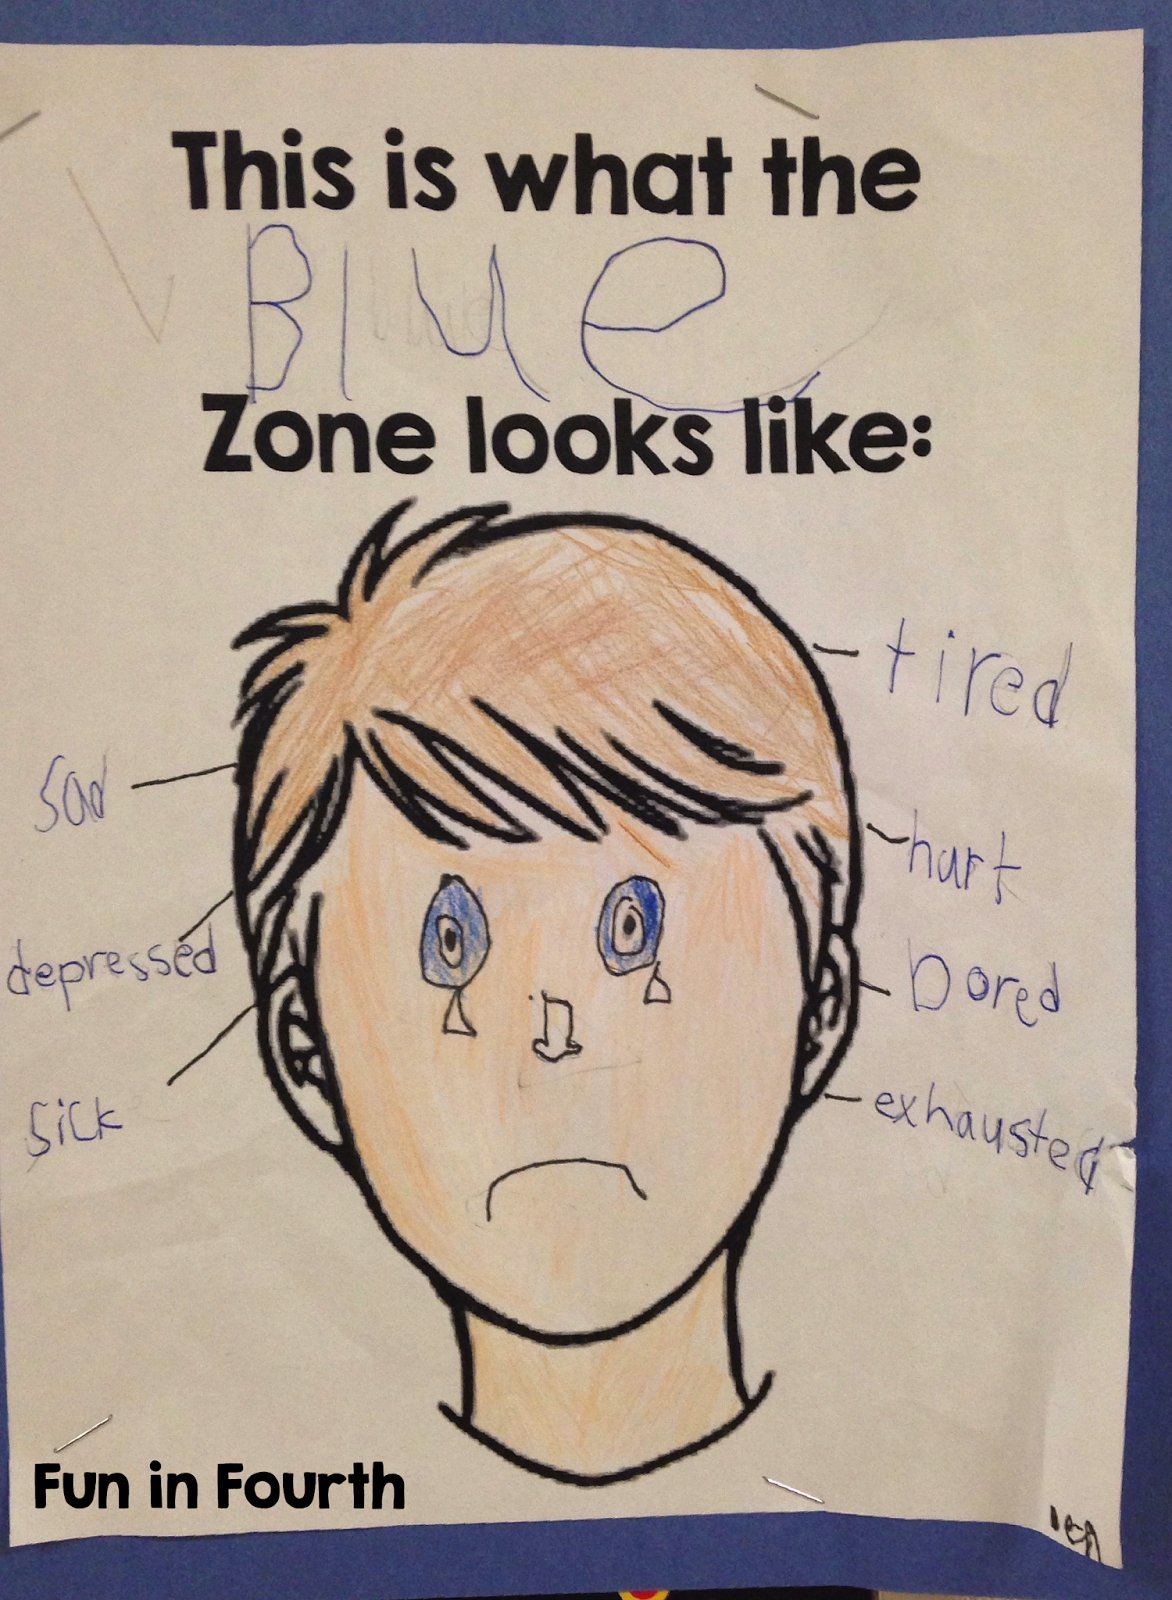 Brainology Teaching Students About Growth Mindset And The Zones Of Regulation